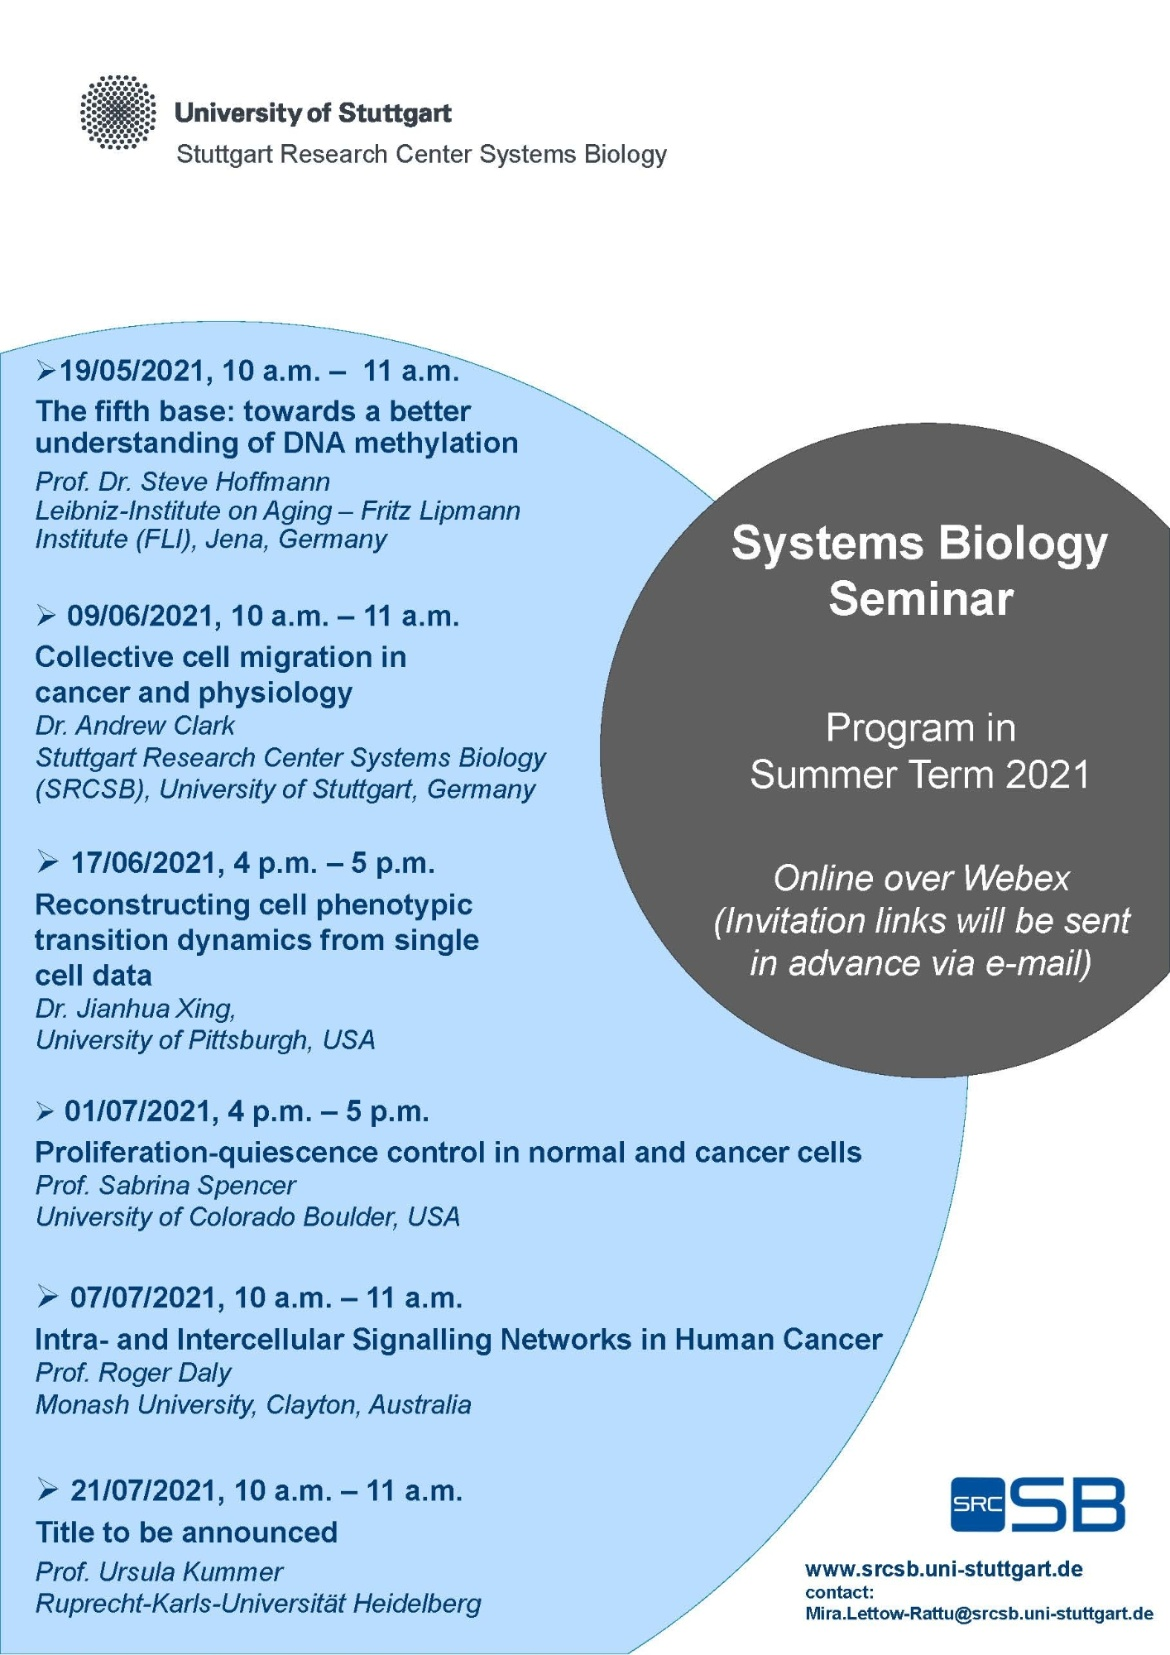 New Poster for the Systems Biology Seminar